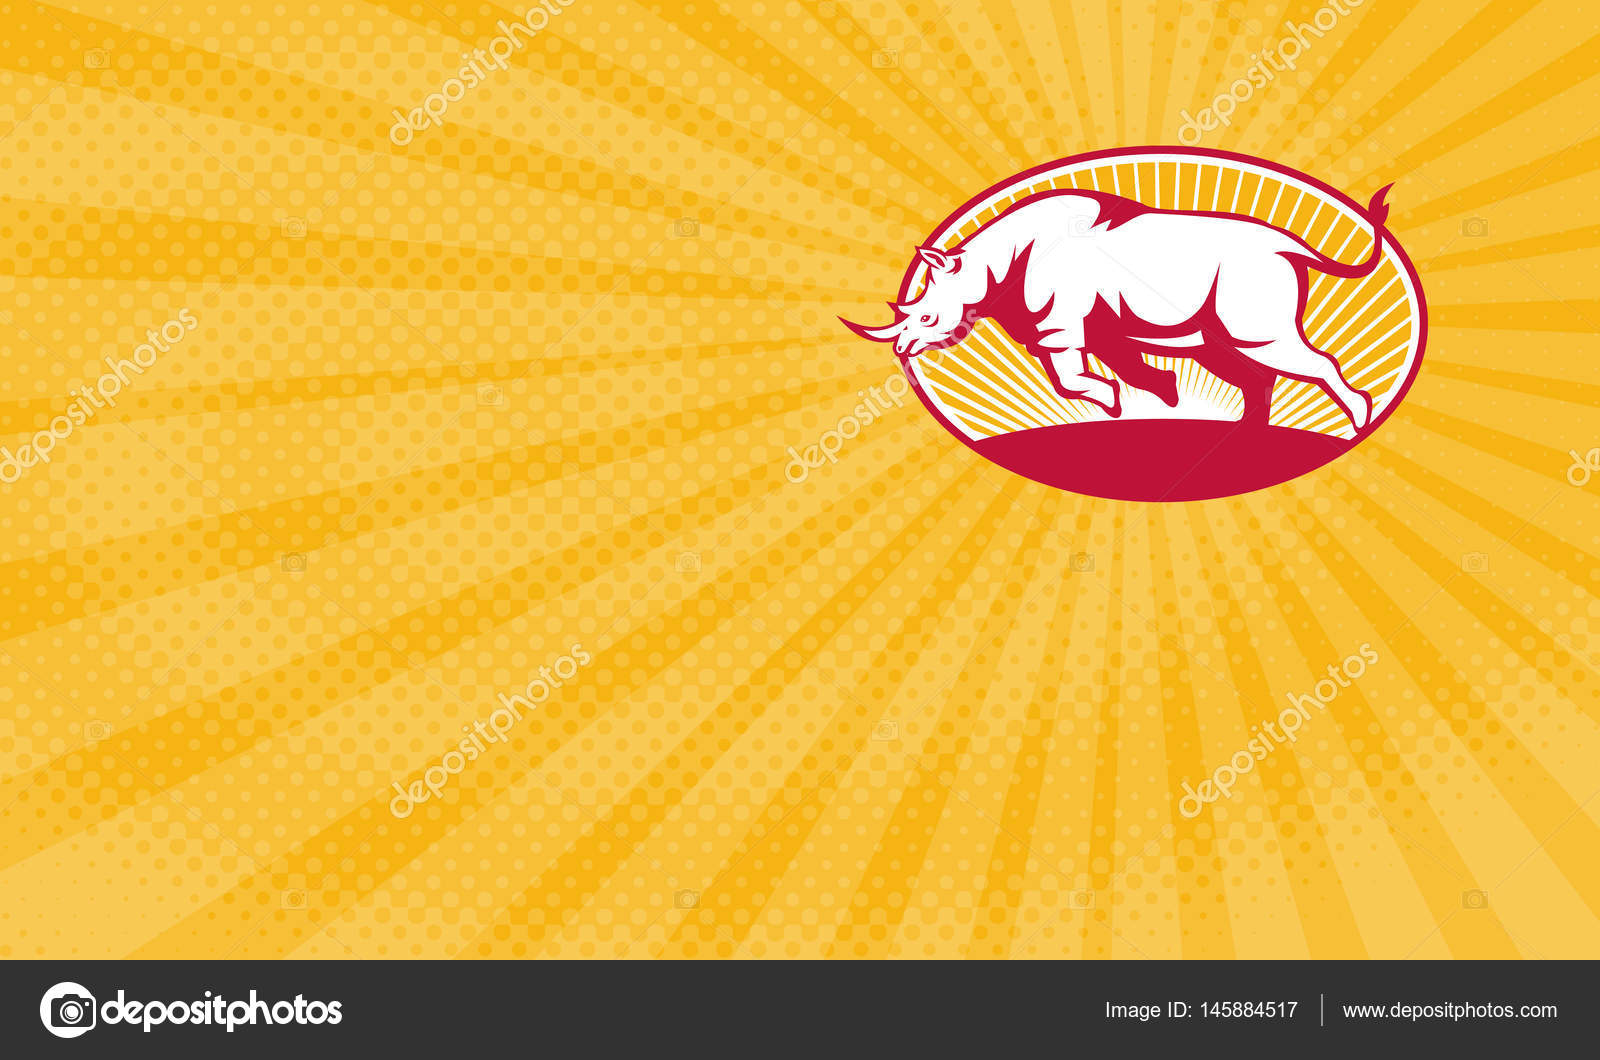 Charging rhino brewery business card stock photo patrimonio business card showing illustration of a rhinoceros charging side view set inside oval done in retro style photo by patrimonio colourmoves